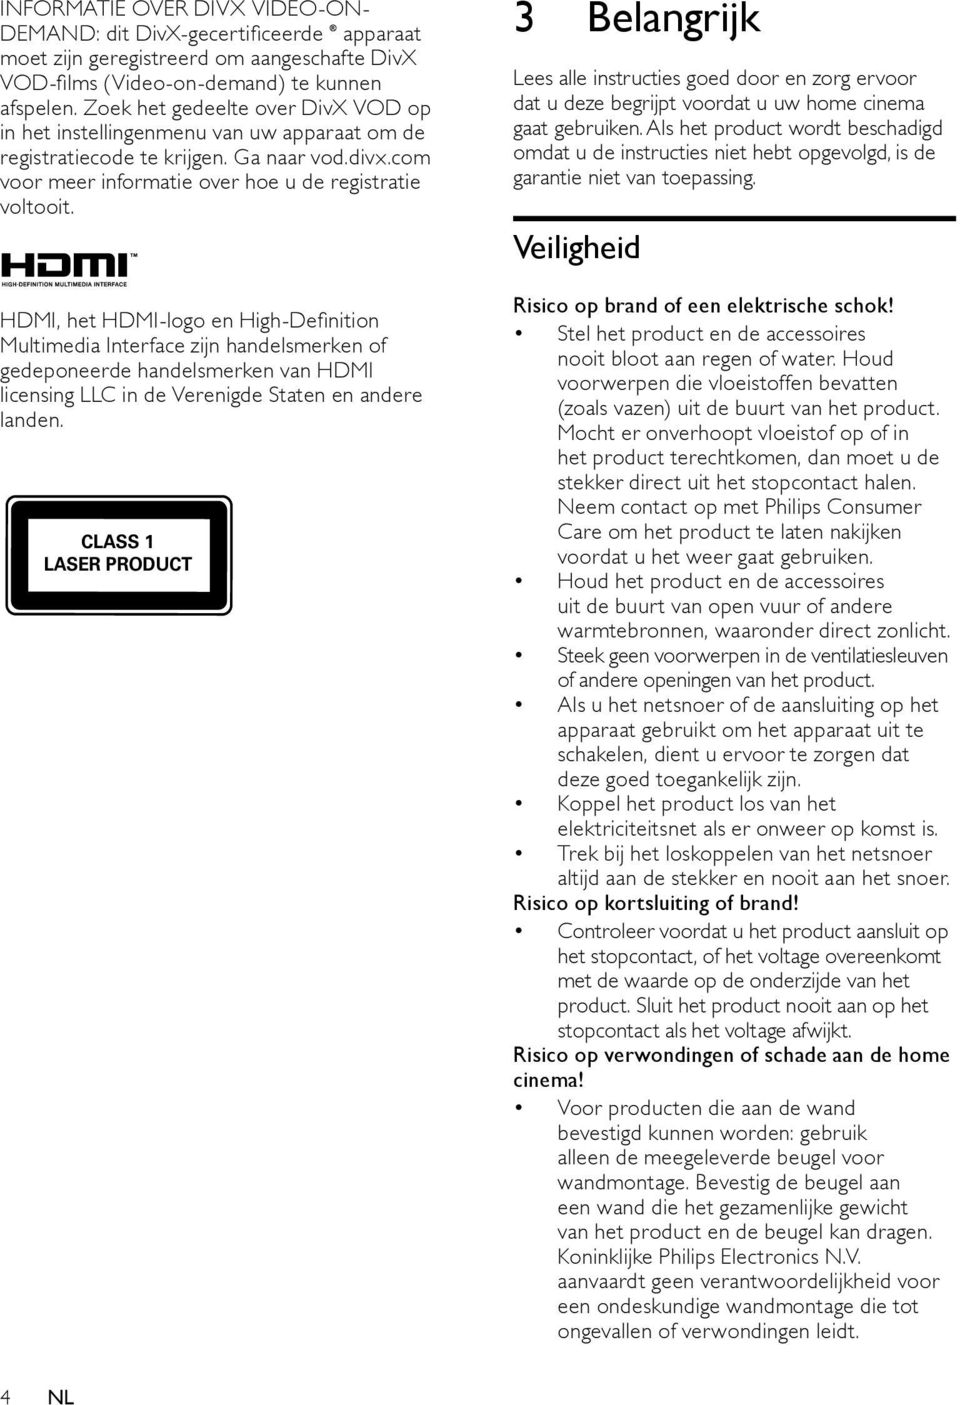 HDMI, het HDMI-logo en High-Definition Multimedia Interface zijn handelsmerken of gedeponeerde handelsmerken van HDMI licensing LLC in de Verenigde Staten en andere landen.